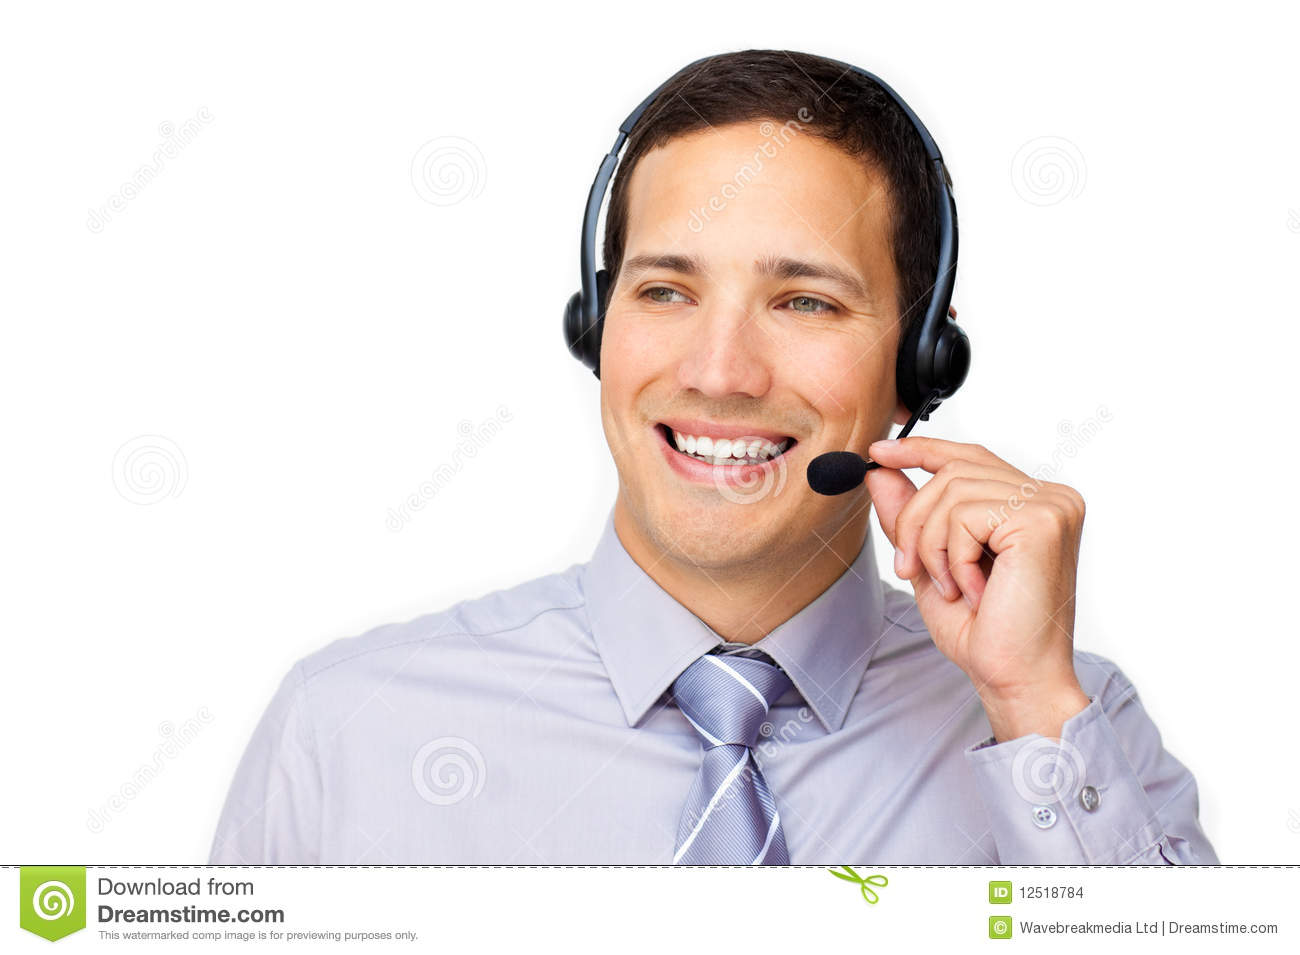 Dashing customer service agent with headset on